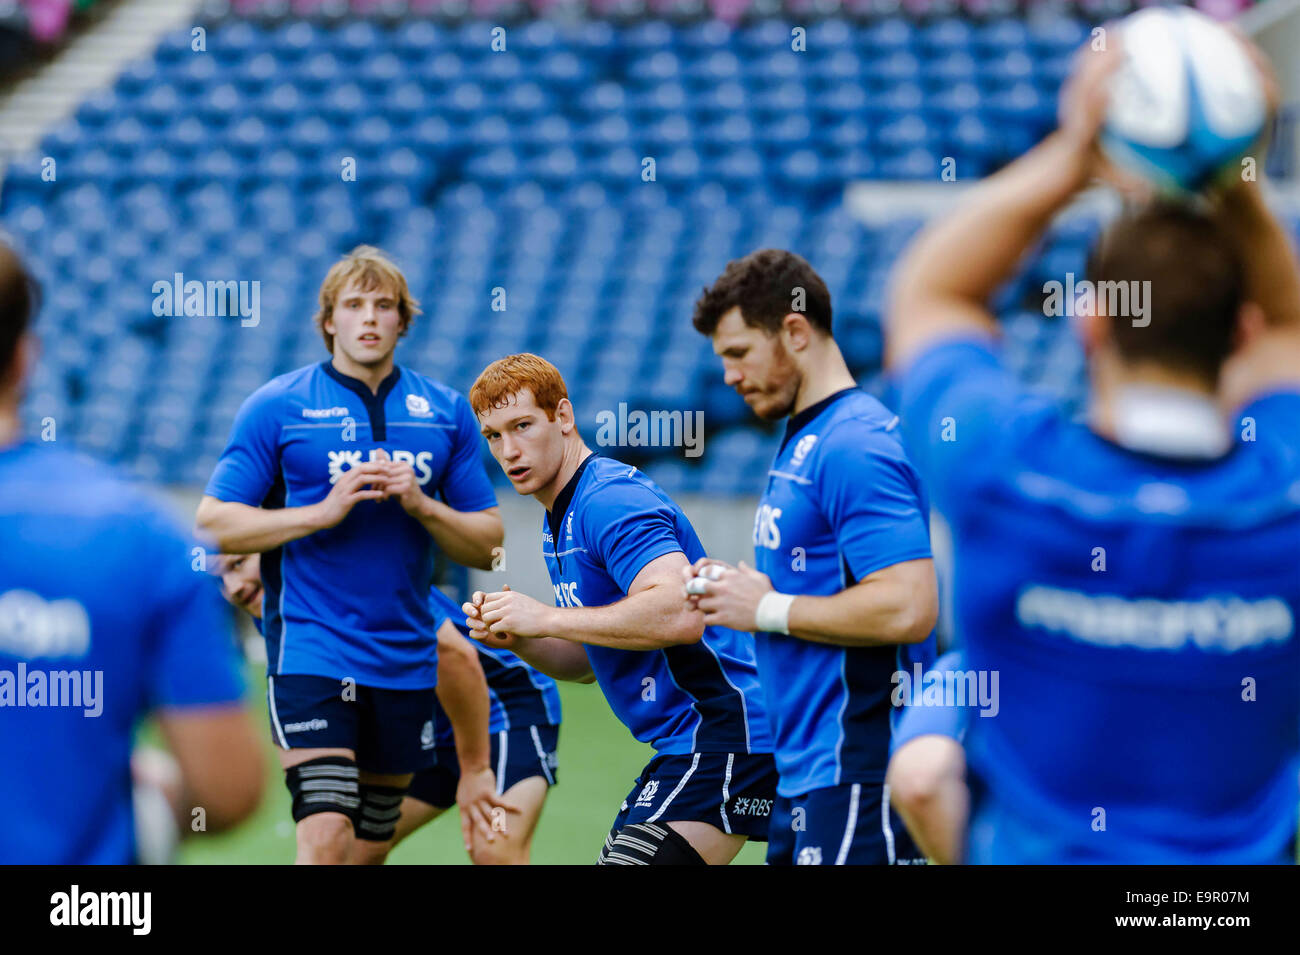 Edinburgh, Scotland, UK. 31st October, 2014, Scotland rugby squad train on the BT Murrayfield pitch ahead of their Stock Photo